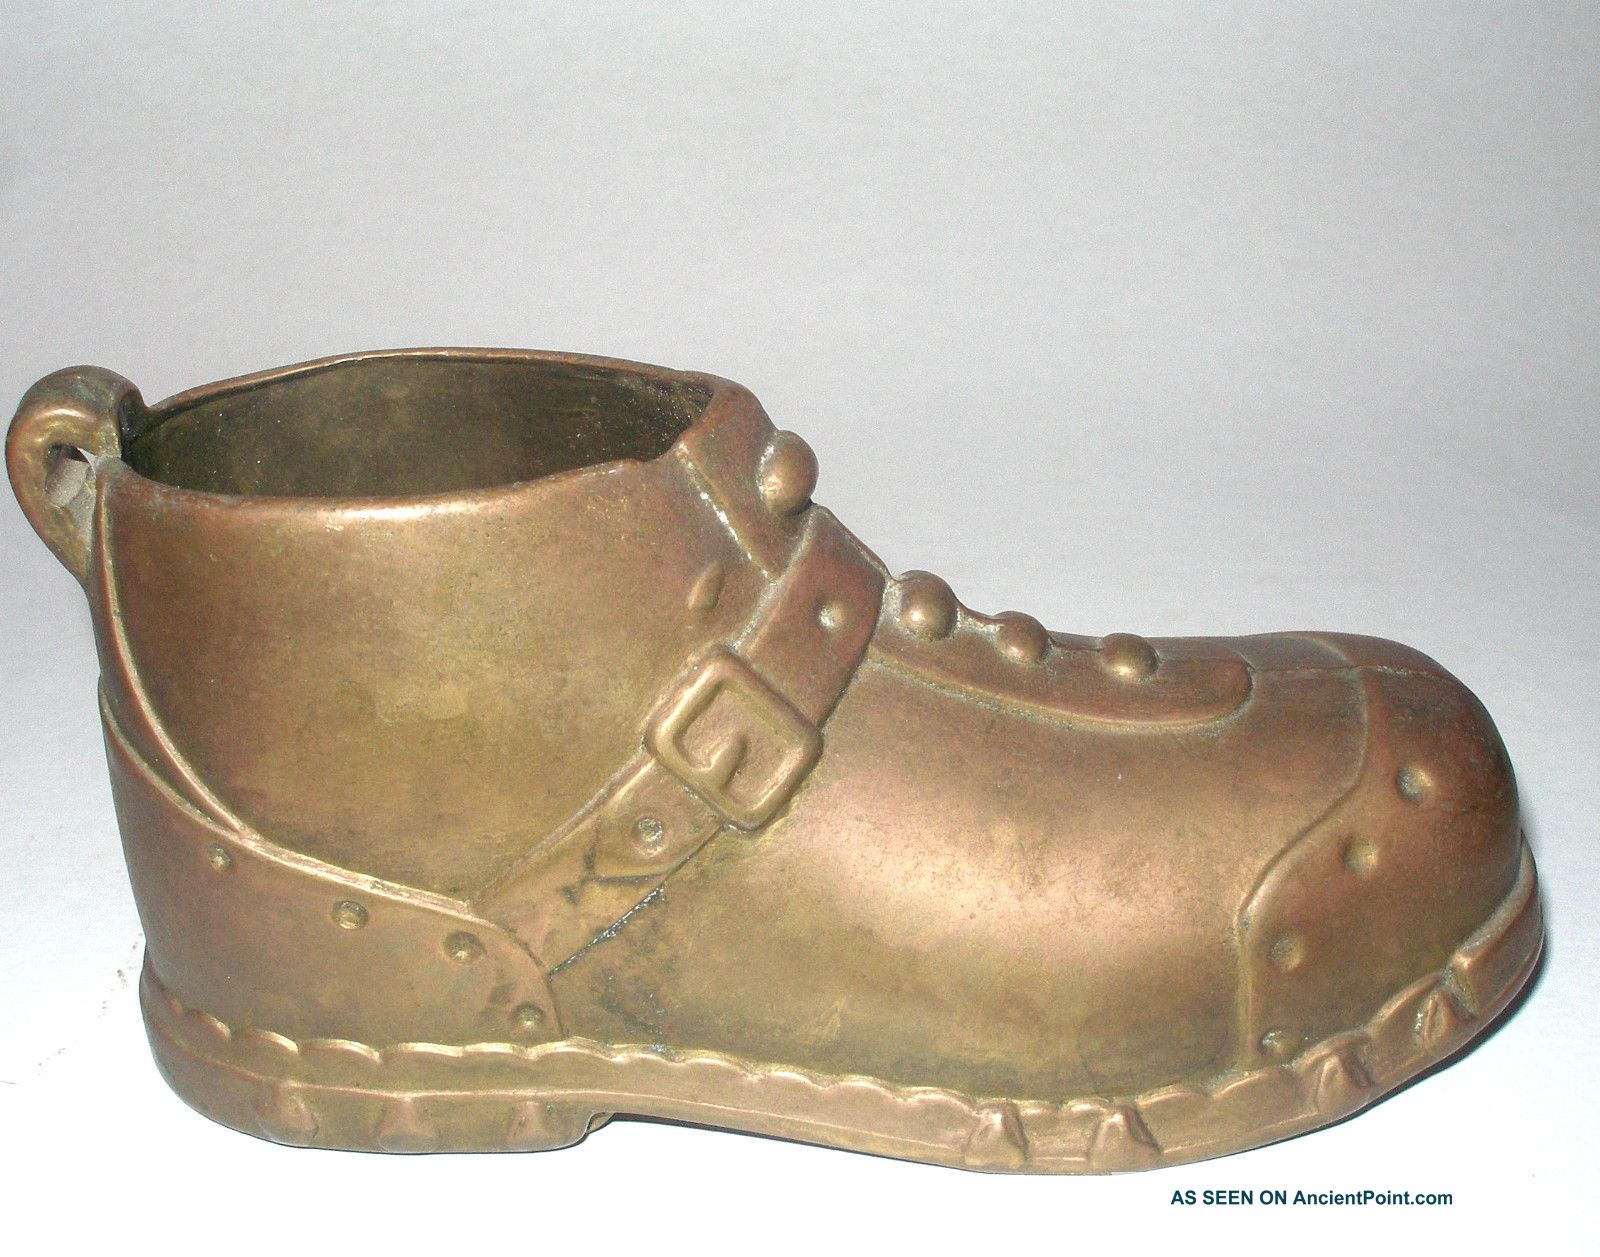 Child Size Hobnail Brass Boot Shoe Totally Brass Sole Old Uncategorized photo